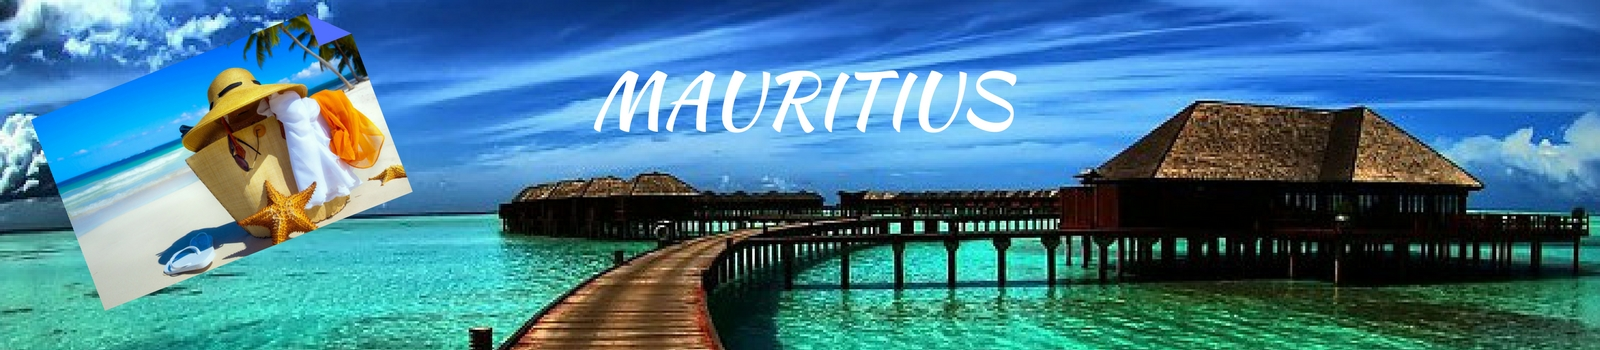 Mauritius Holiday Packags